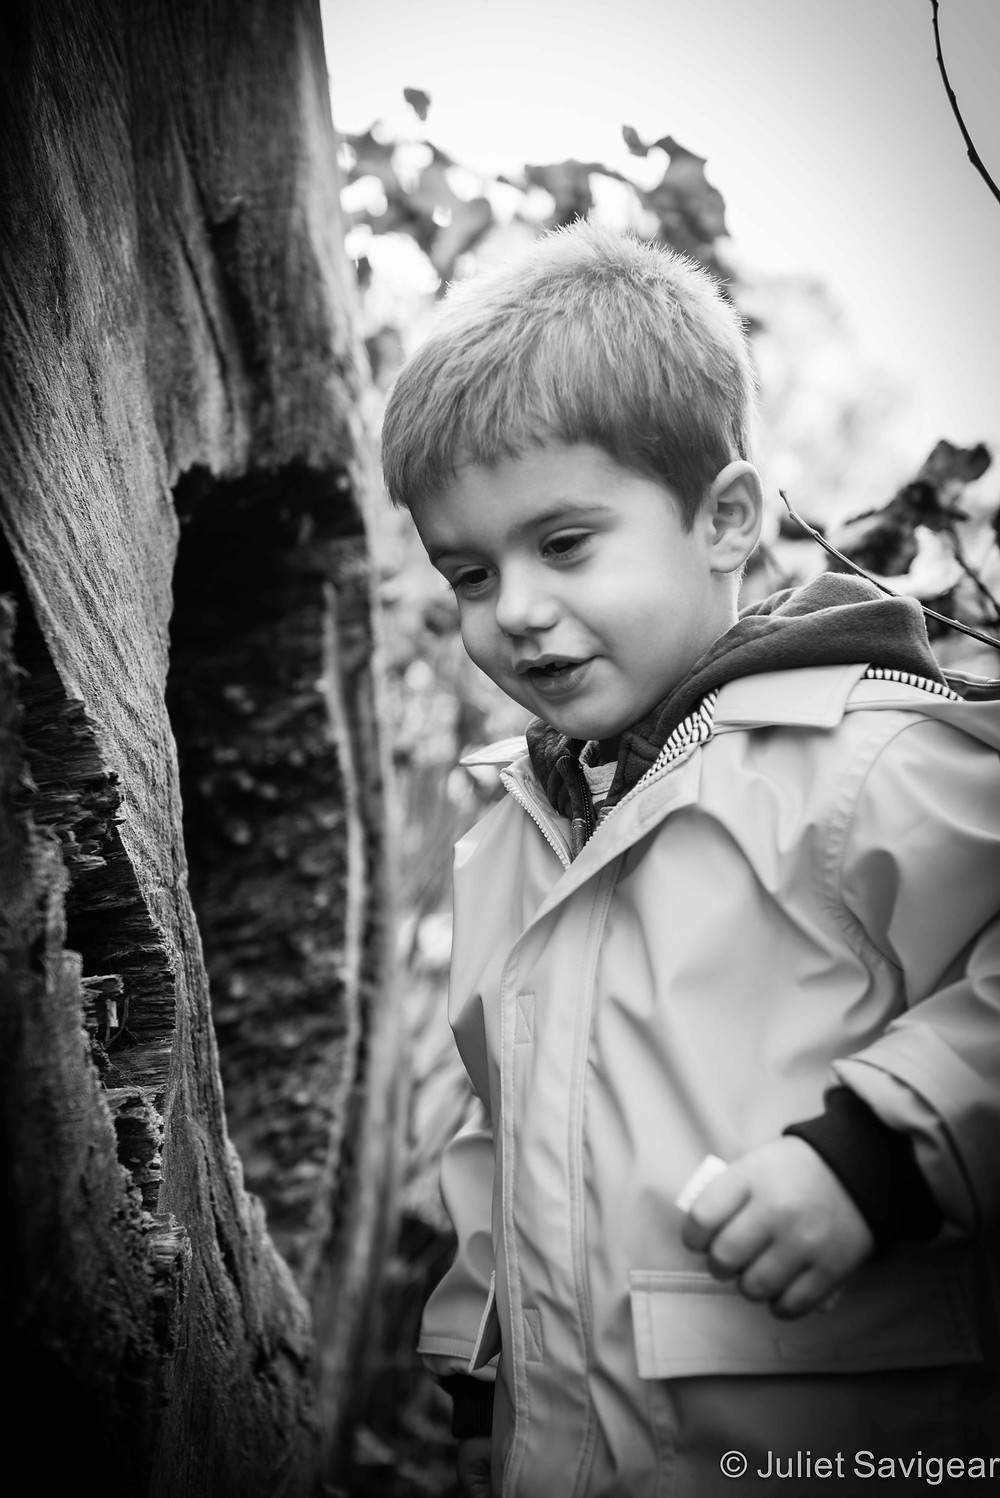 Exploring - Children's Photography, Clapham Common